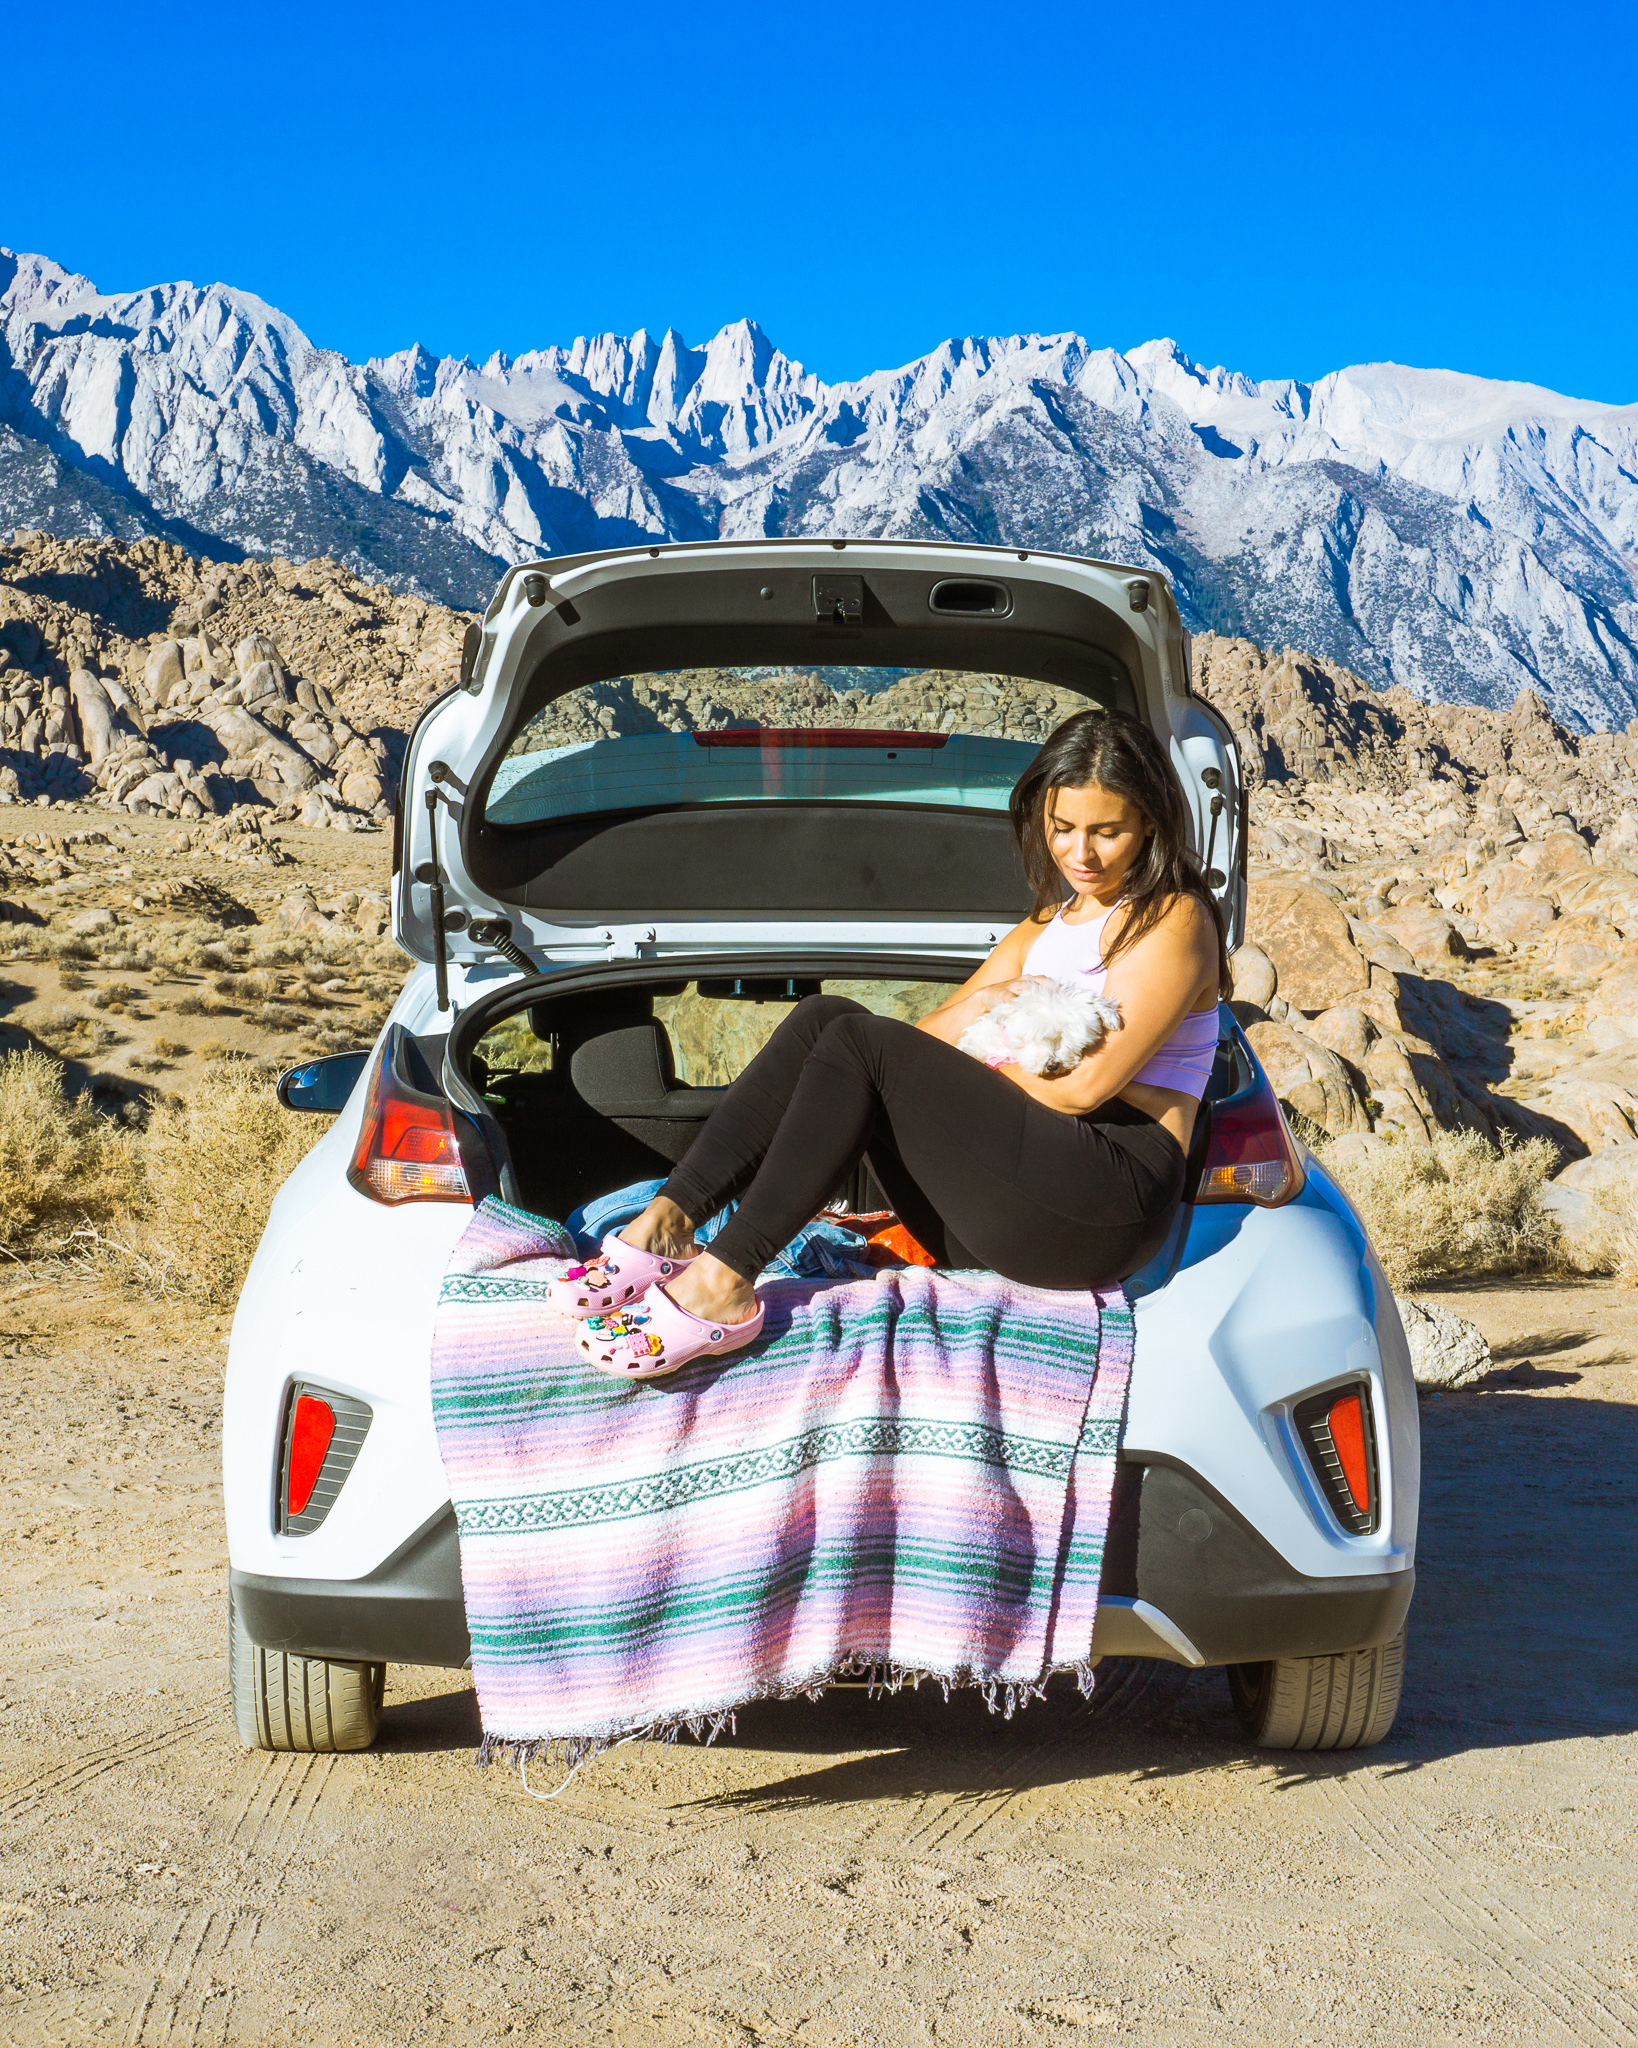 crocs sponsored post woman in car with dog mountains in background